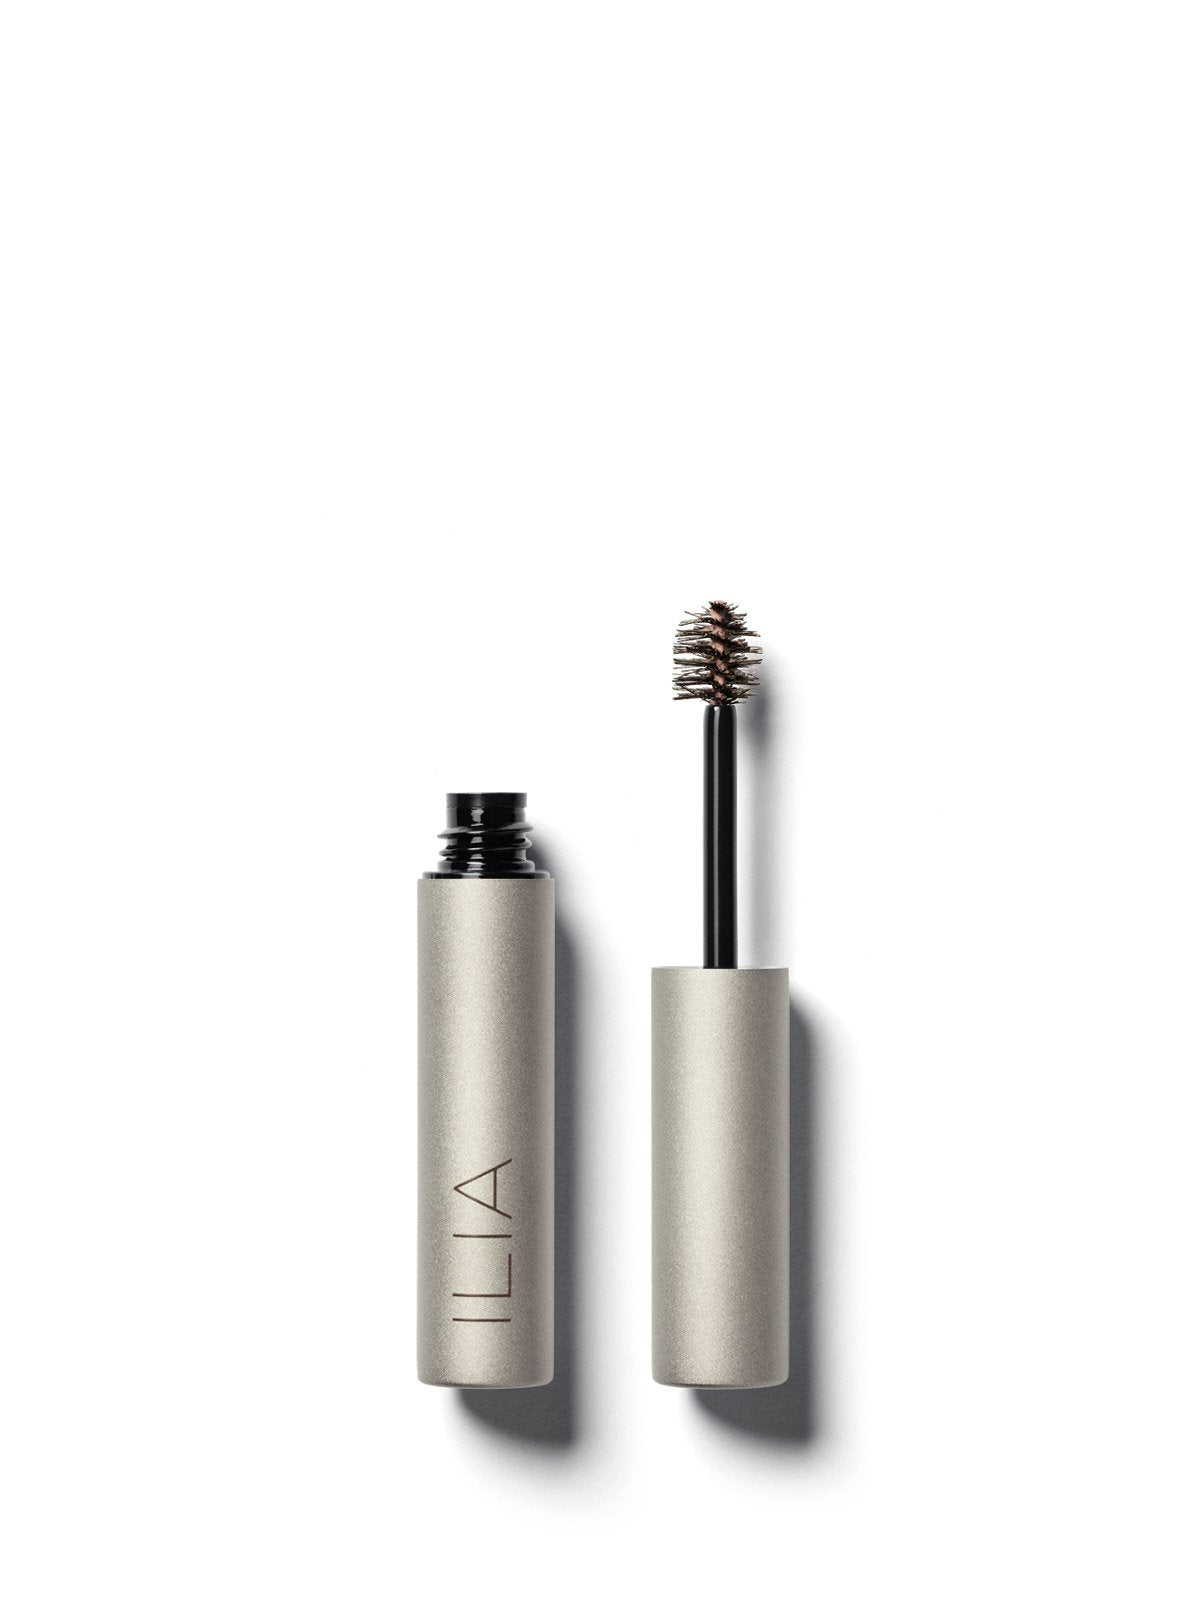 ESSENTIAL BROW - NATURAL VOLUMIZING BROW GEL